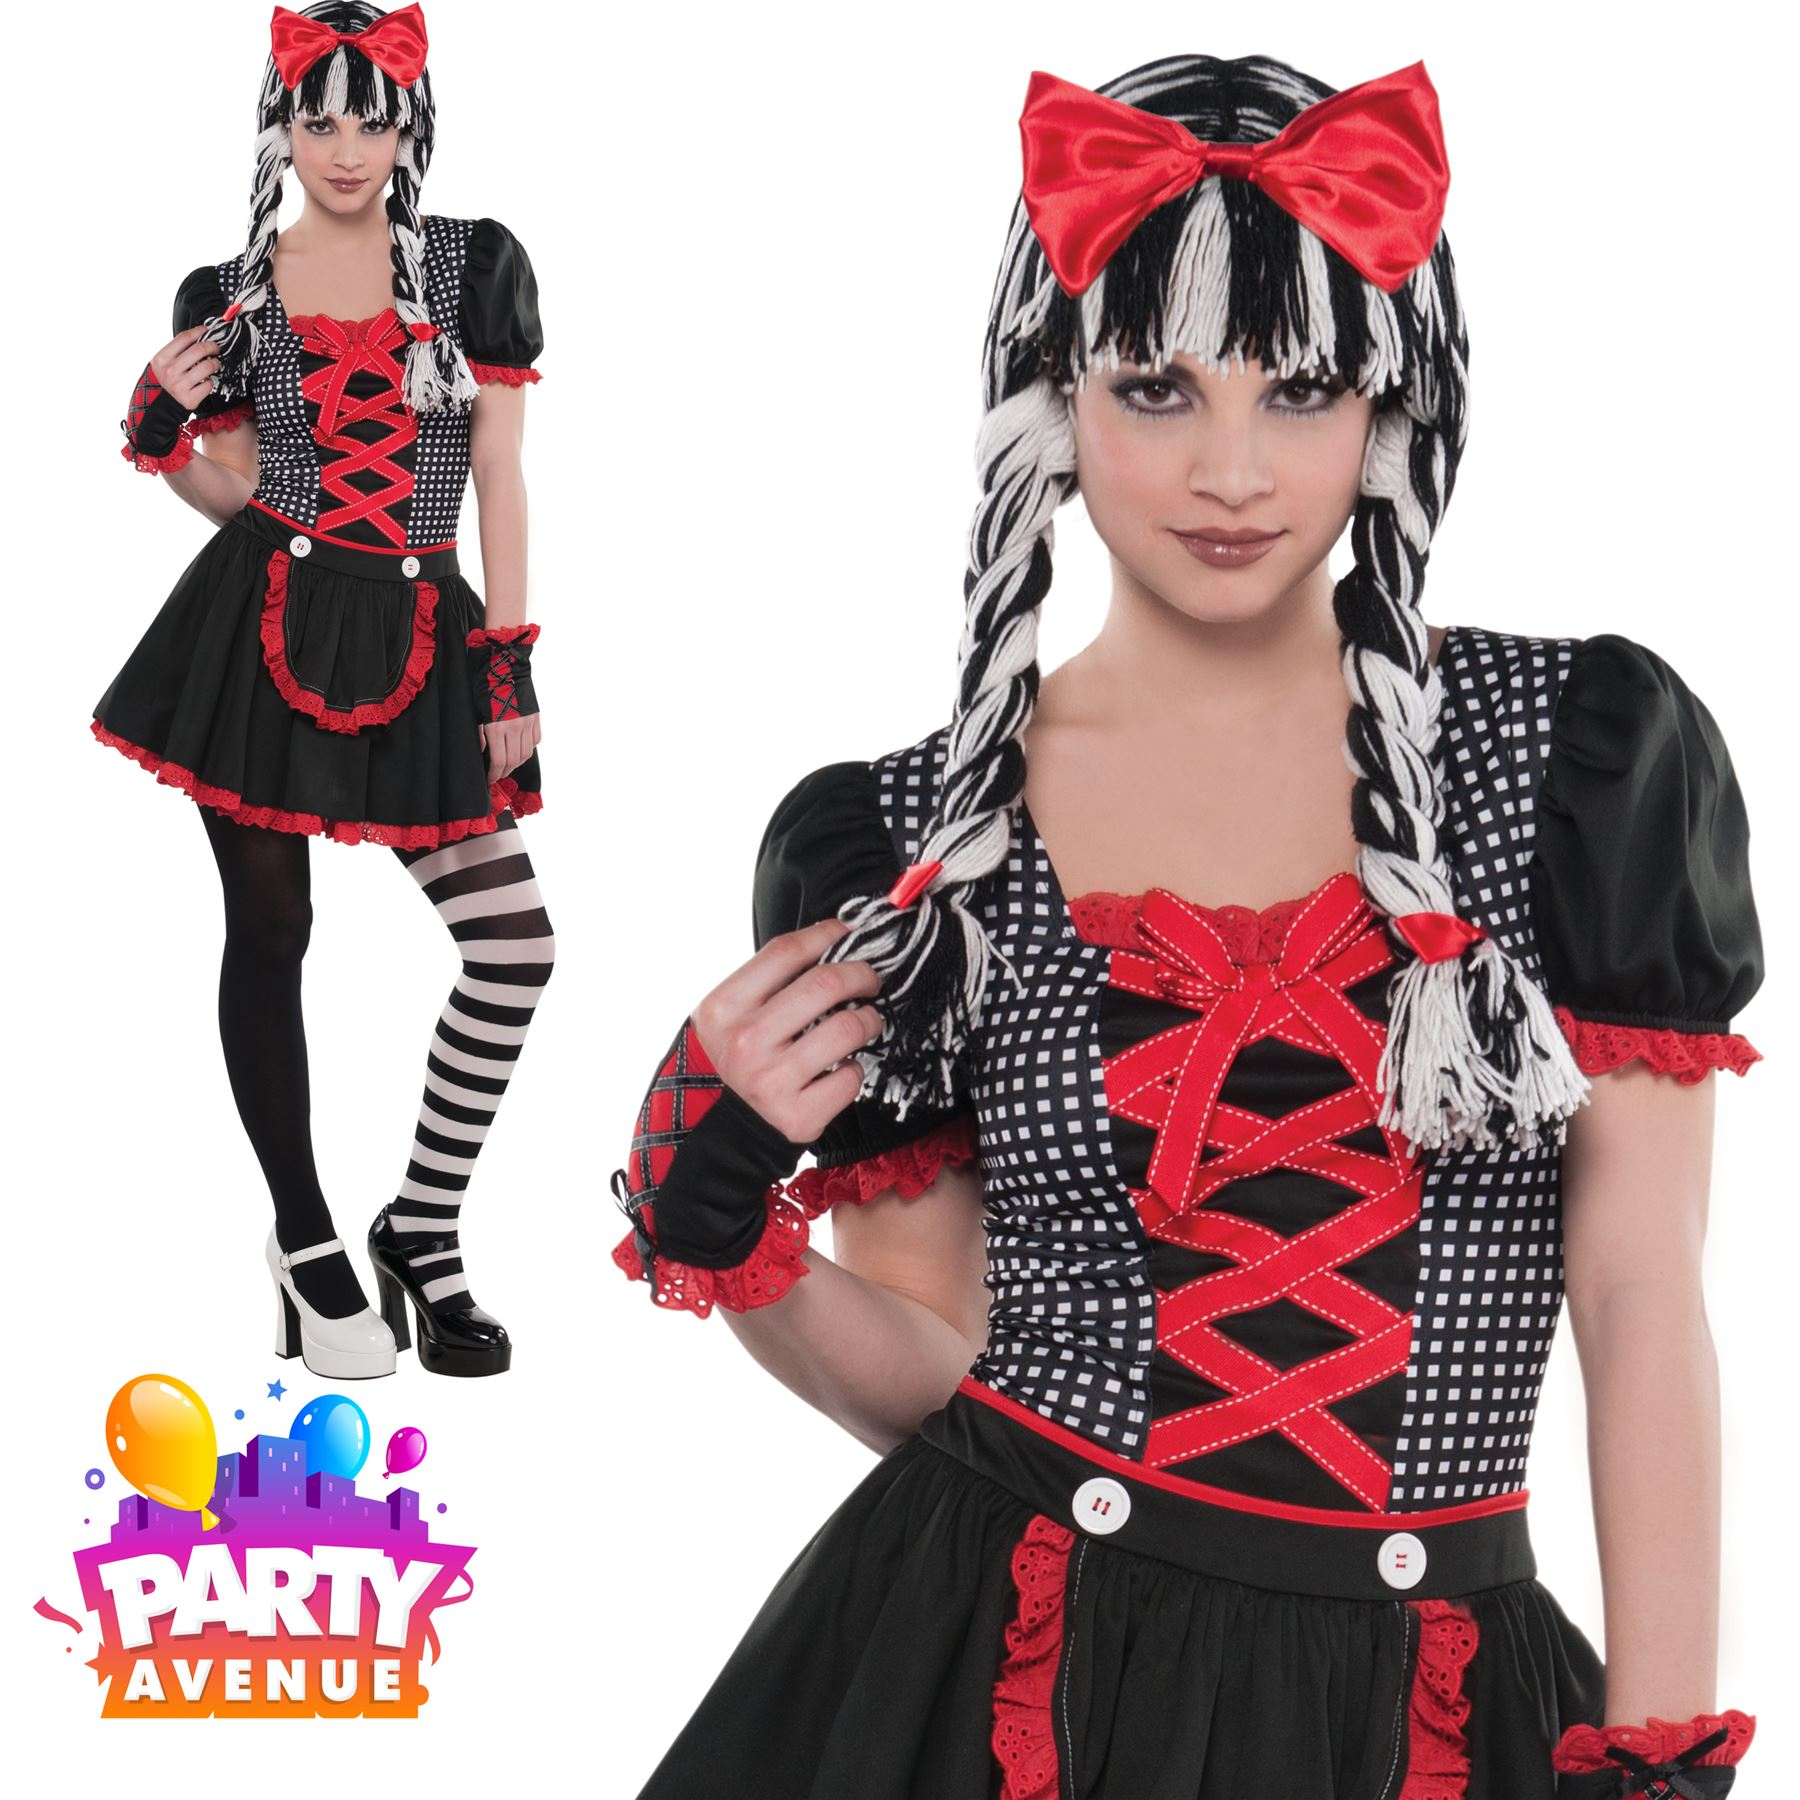 Halloween Costumes For Kids Girls 11 And Up.Details About Girls Teen Gothic Doll Halloween Marionette Costume